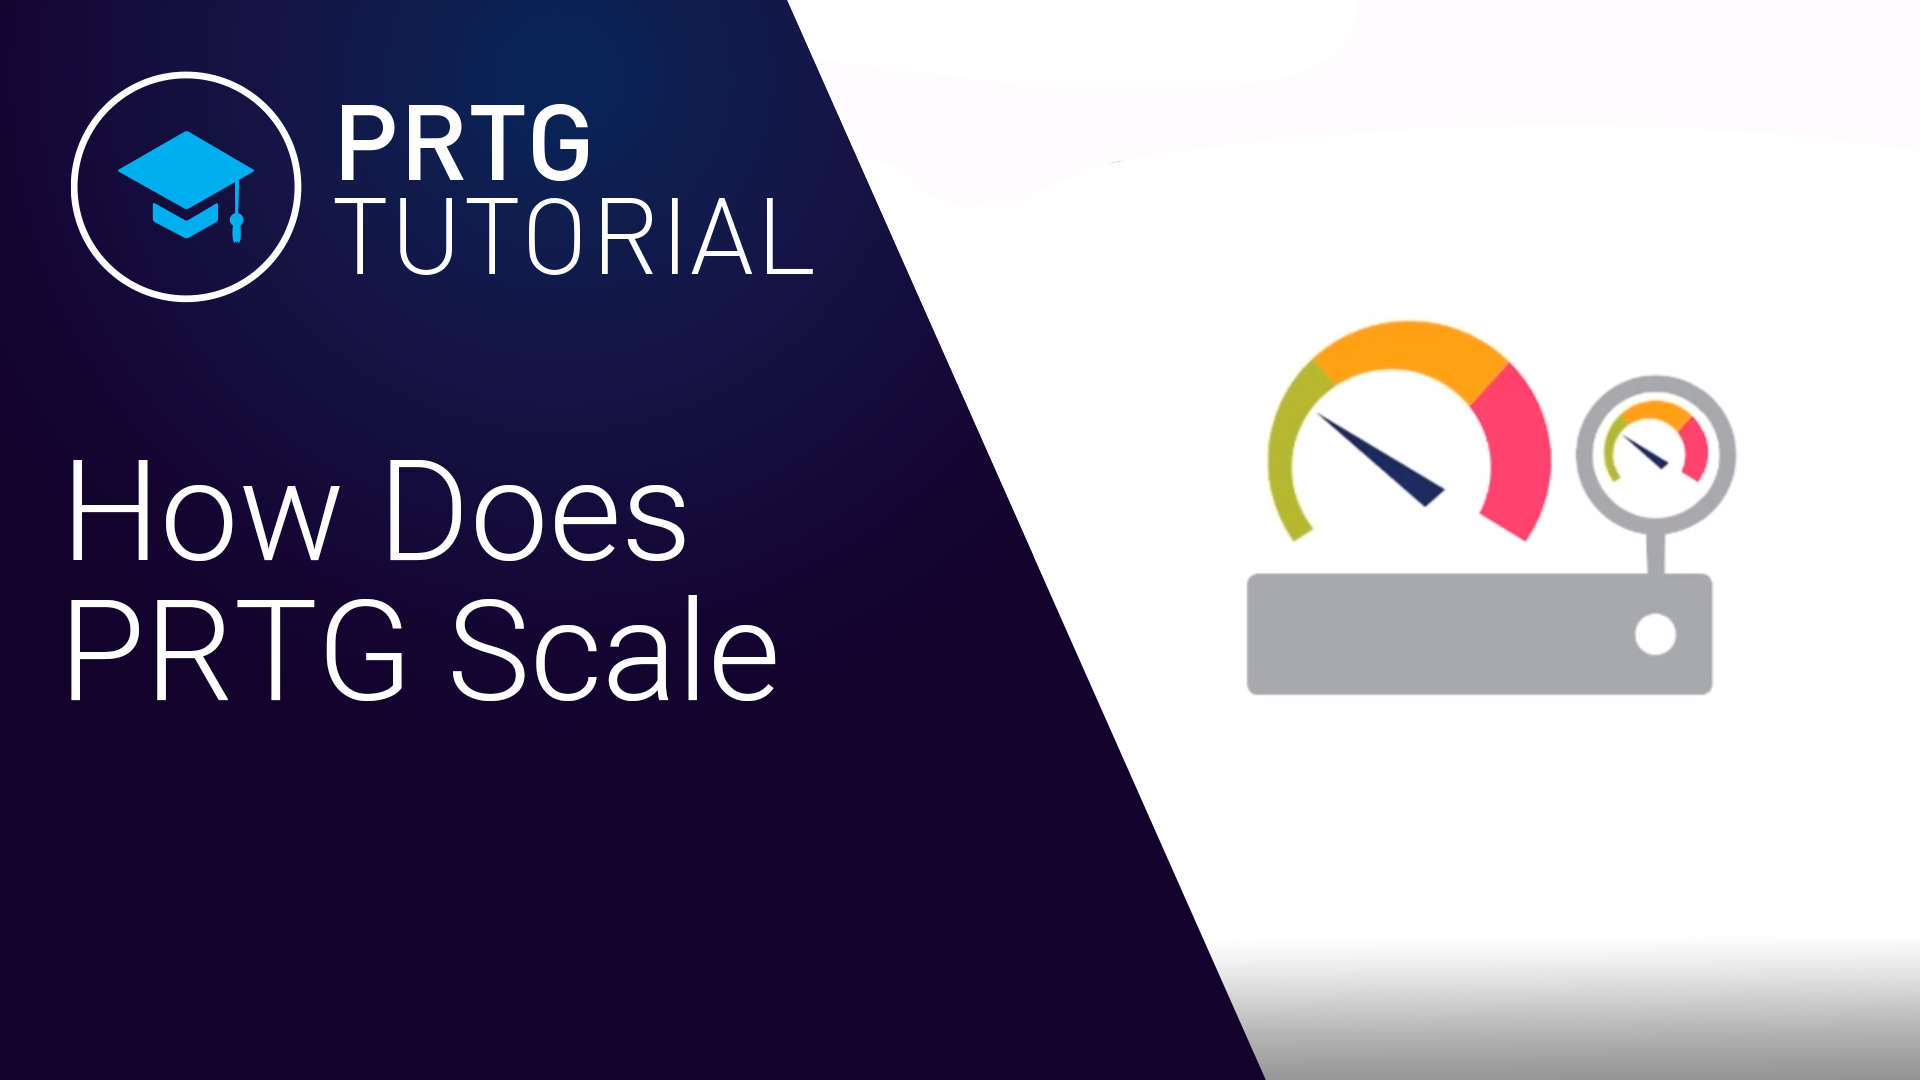 How Does PRTG Scale? (Videos, Overview)